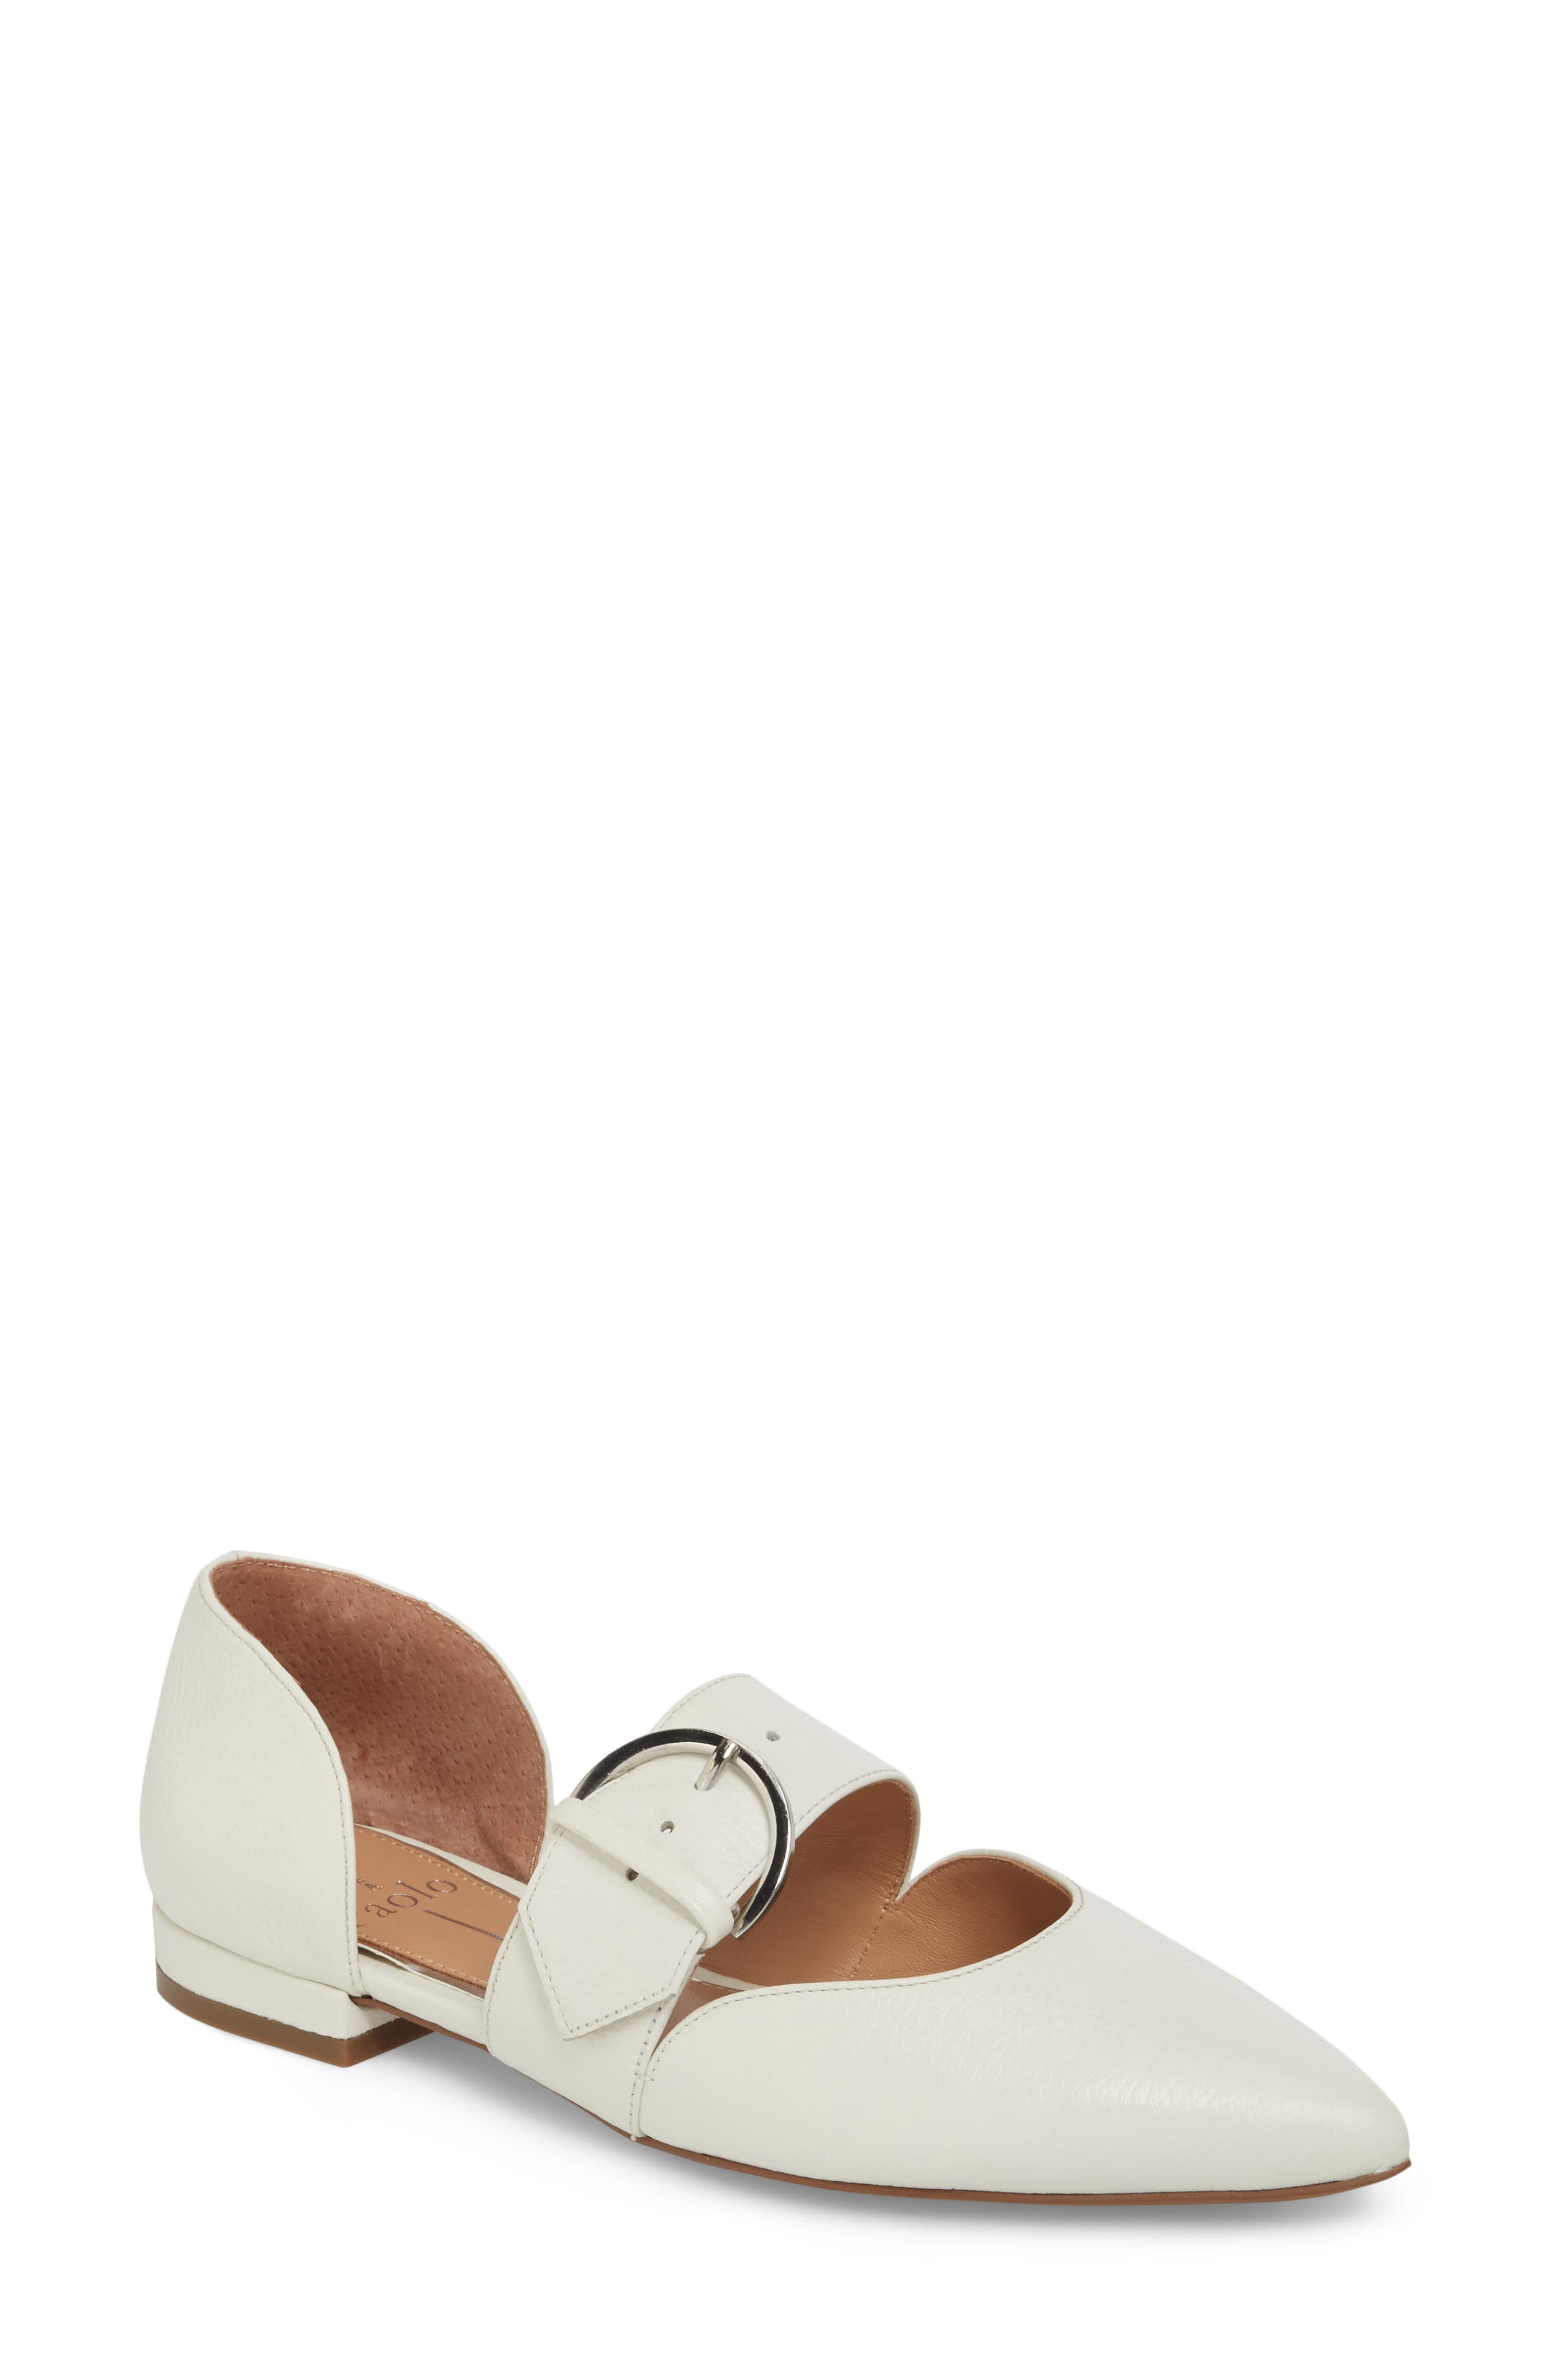 Linea Paolo Dean Pointy Toe Flat, White